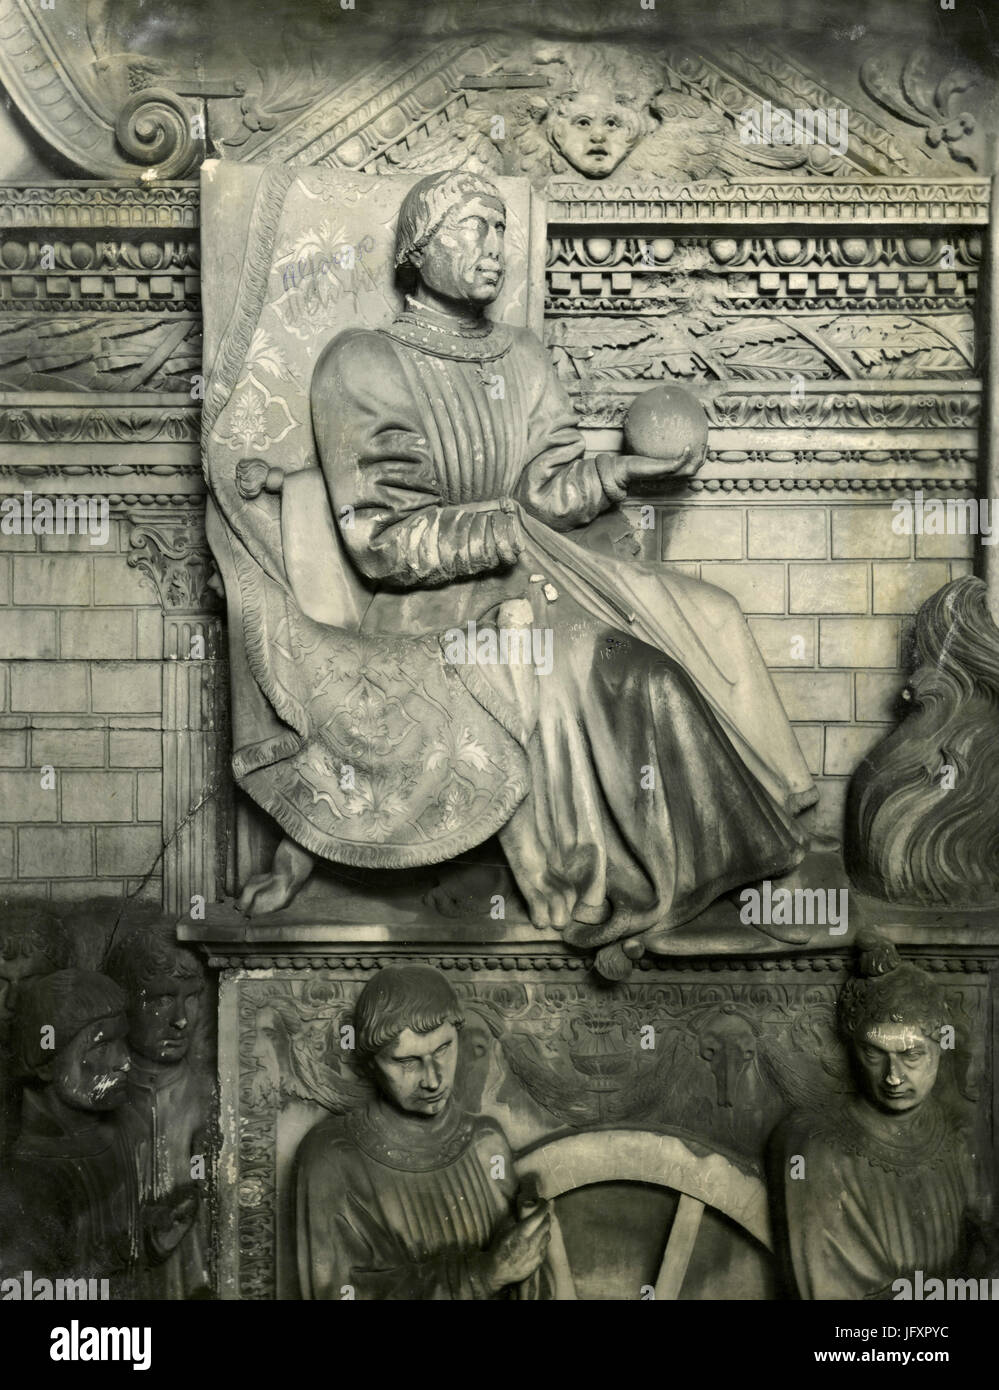 Alfonso of Aragon, bas-relief detail, Castel Nuovo, Neaples, Italy - Stock Image